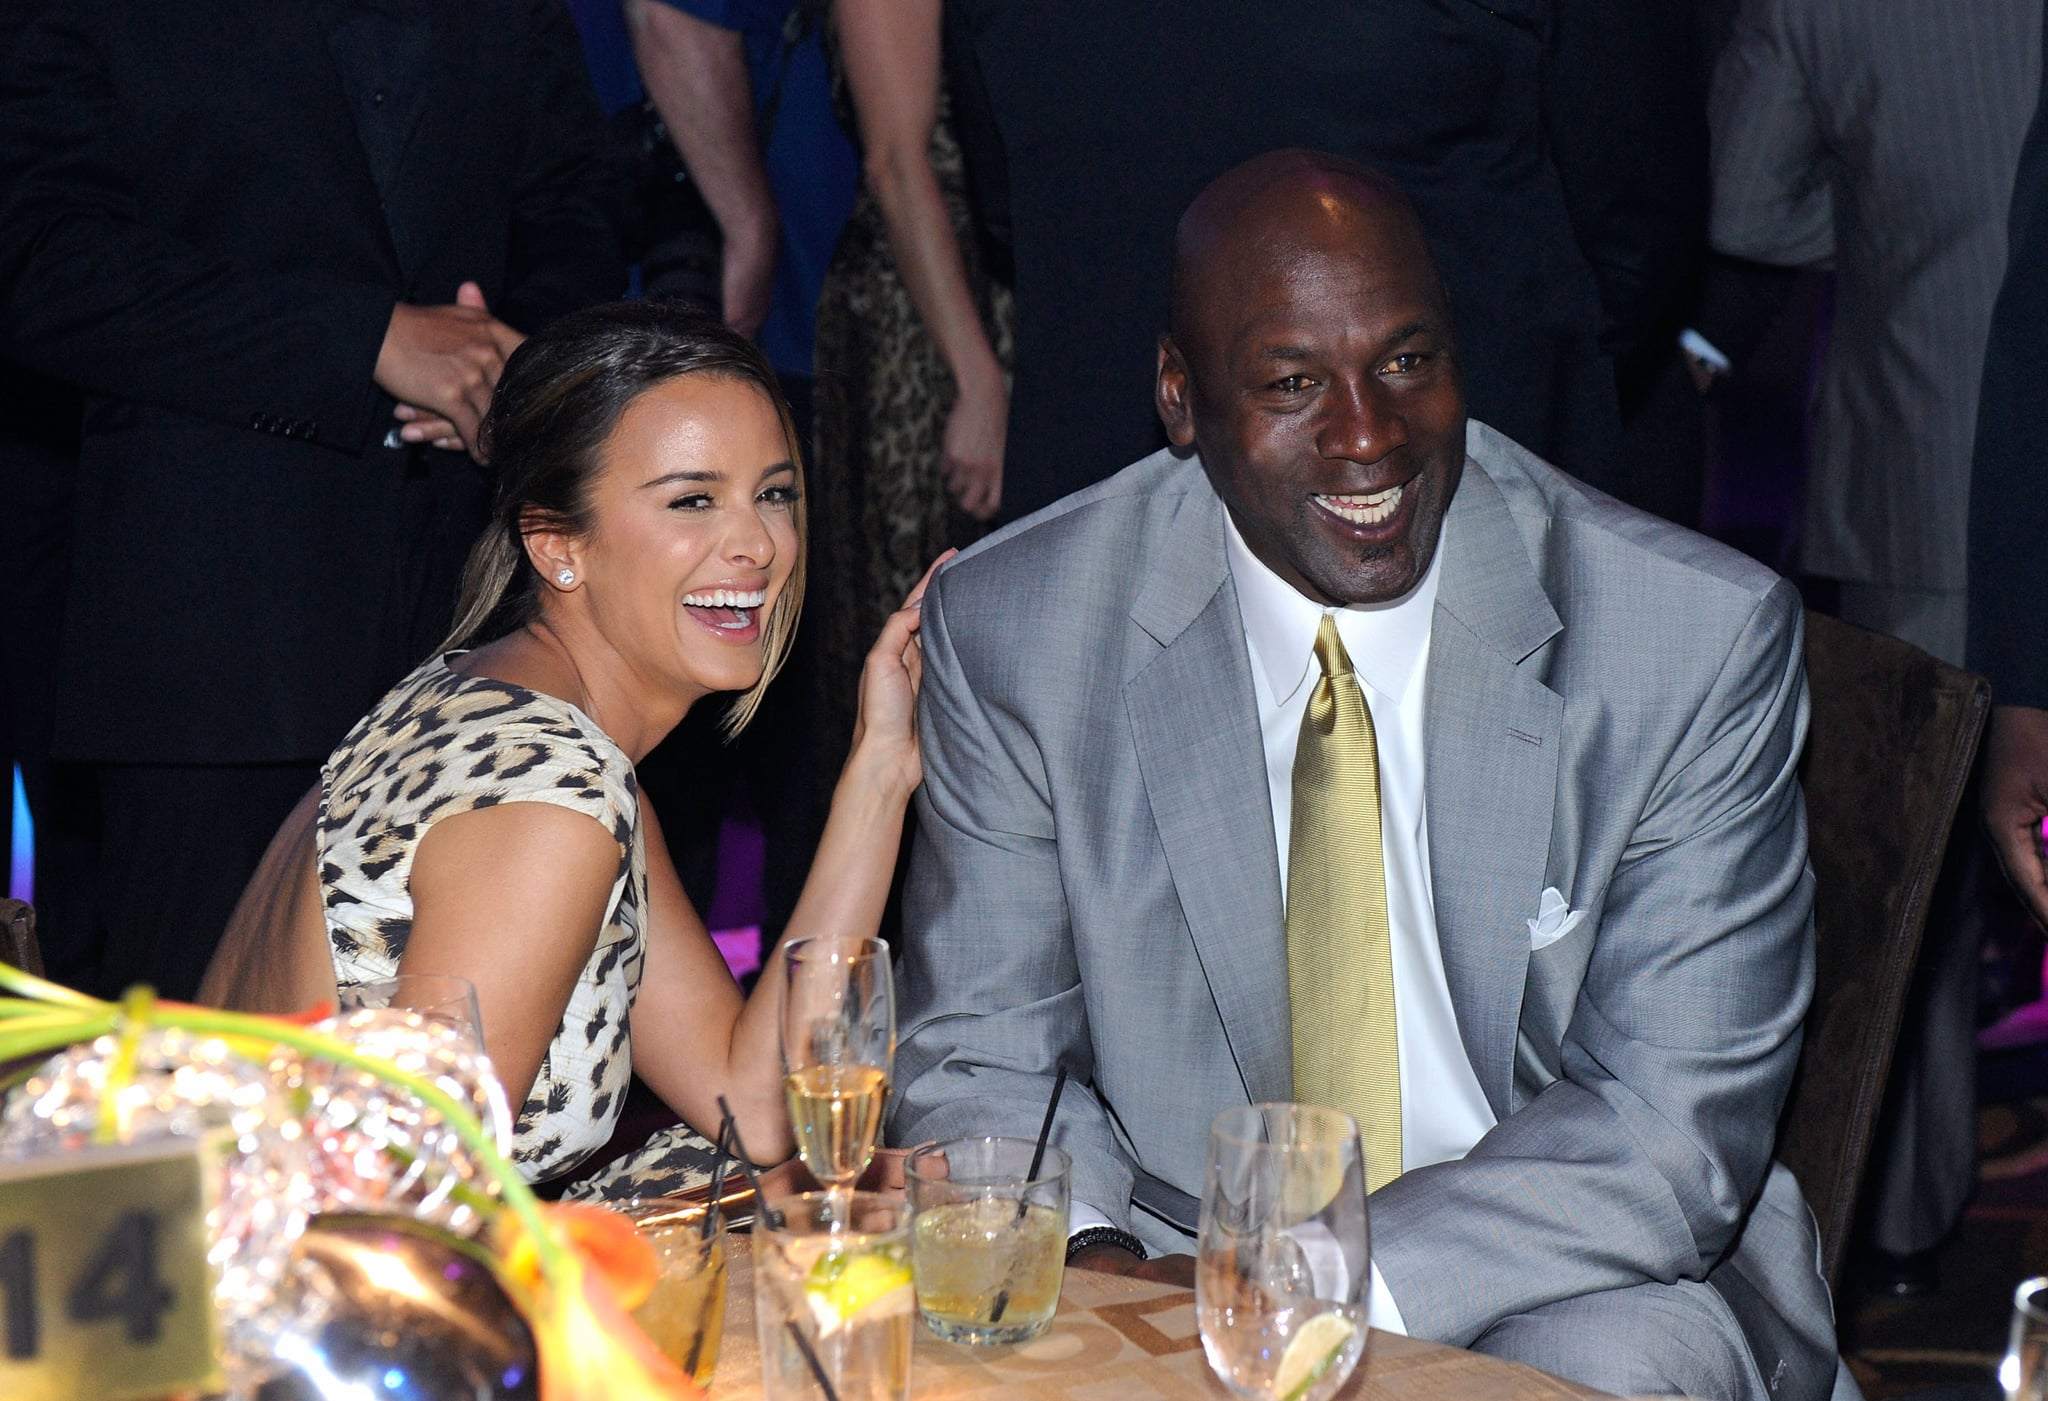 LAS VEGAS, NV - MARCH 30:  Charlotte Bobcats owner Michael Jordan (R) and fiancee Yvette Prieto attend the 11th annual Michael Jordan Celebrity Invitational gala at the Aria Resort & Casino at CityCentre March 30, 2011 in Las Vegas, Nevada.  (Photo by Ethan Miller/Getty Images for MJCI)